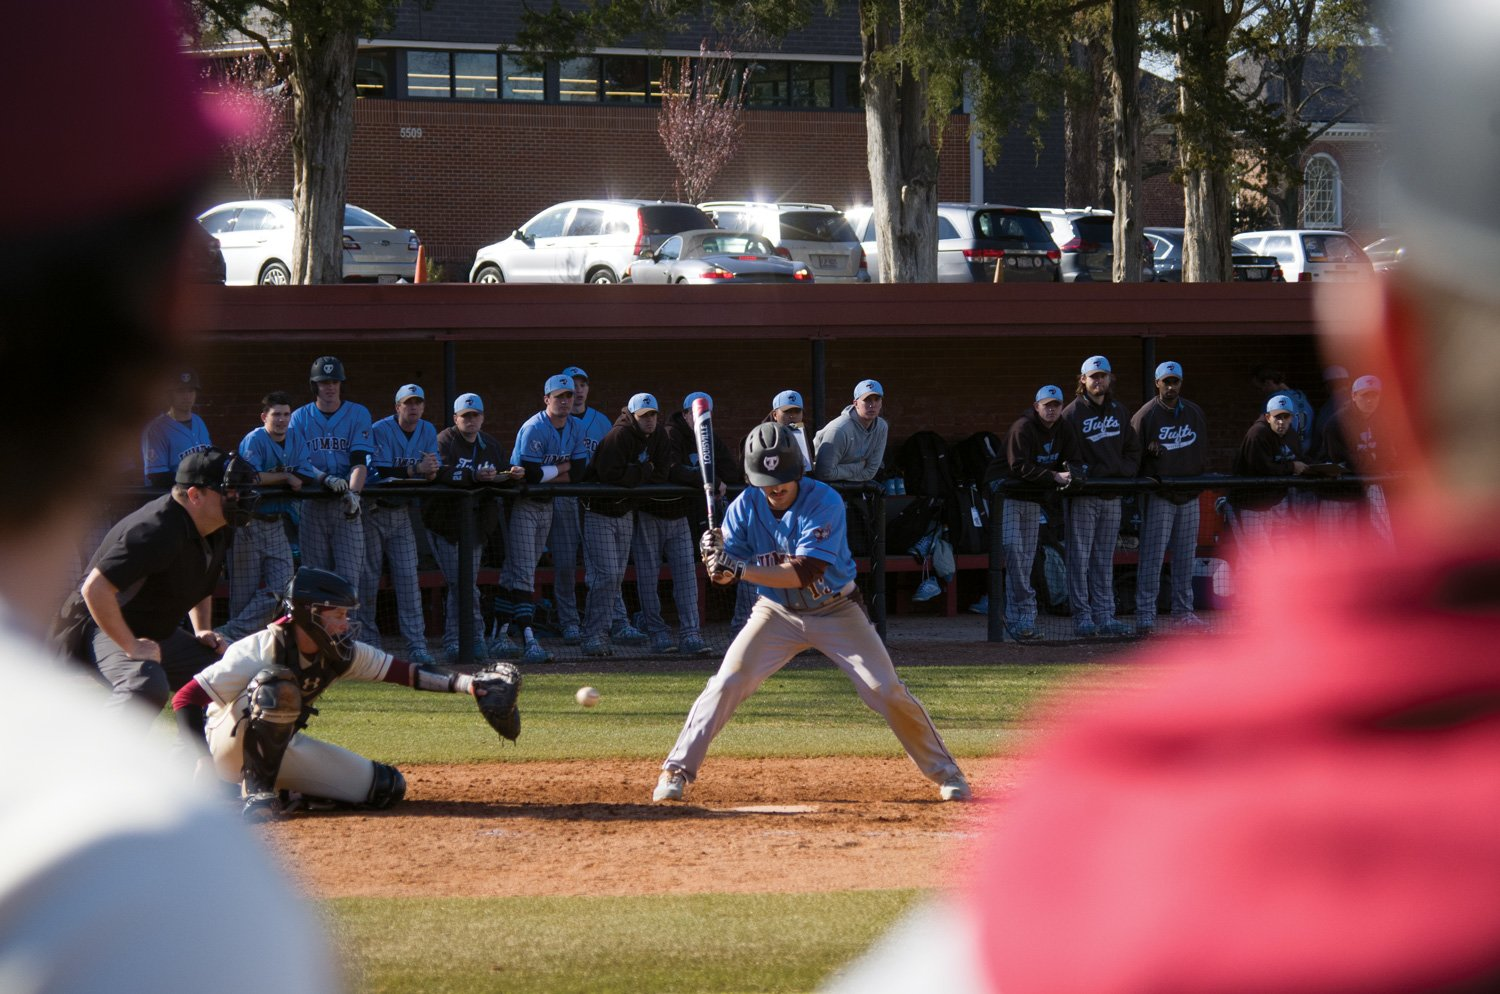 Tufts University third baseman Elias Varinos watches Guilford junior catcher Ryan Hill catch a pitch from junior pitcher Brody Holloman on Mar. 18.//Photo by Andrew Walker/The Guilfordian